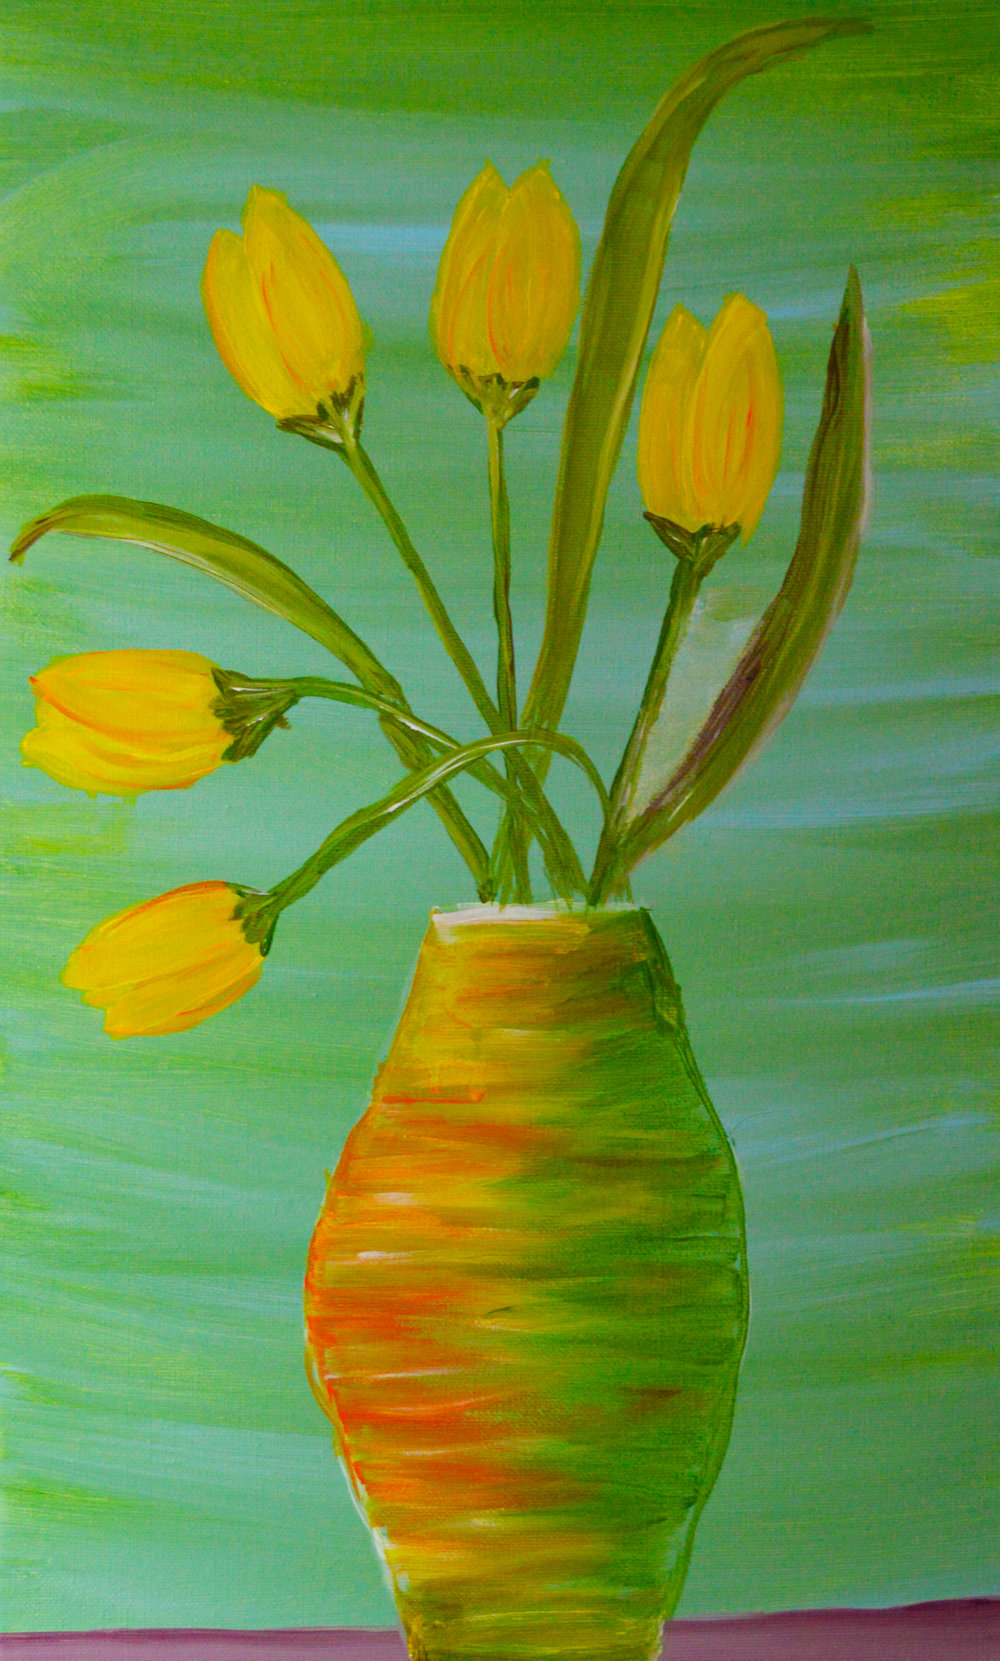 yellow_tulips_3.jpg